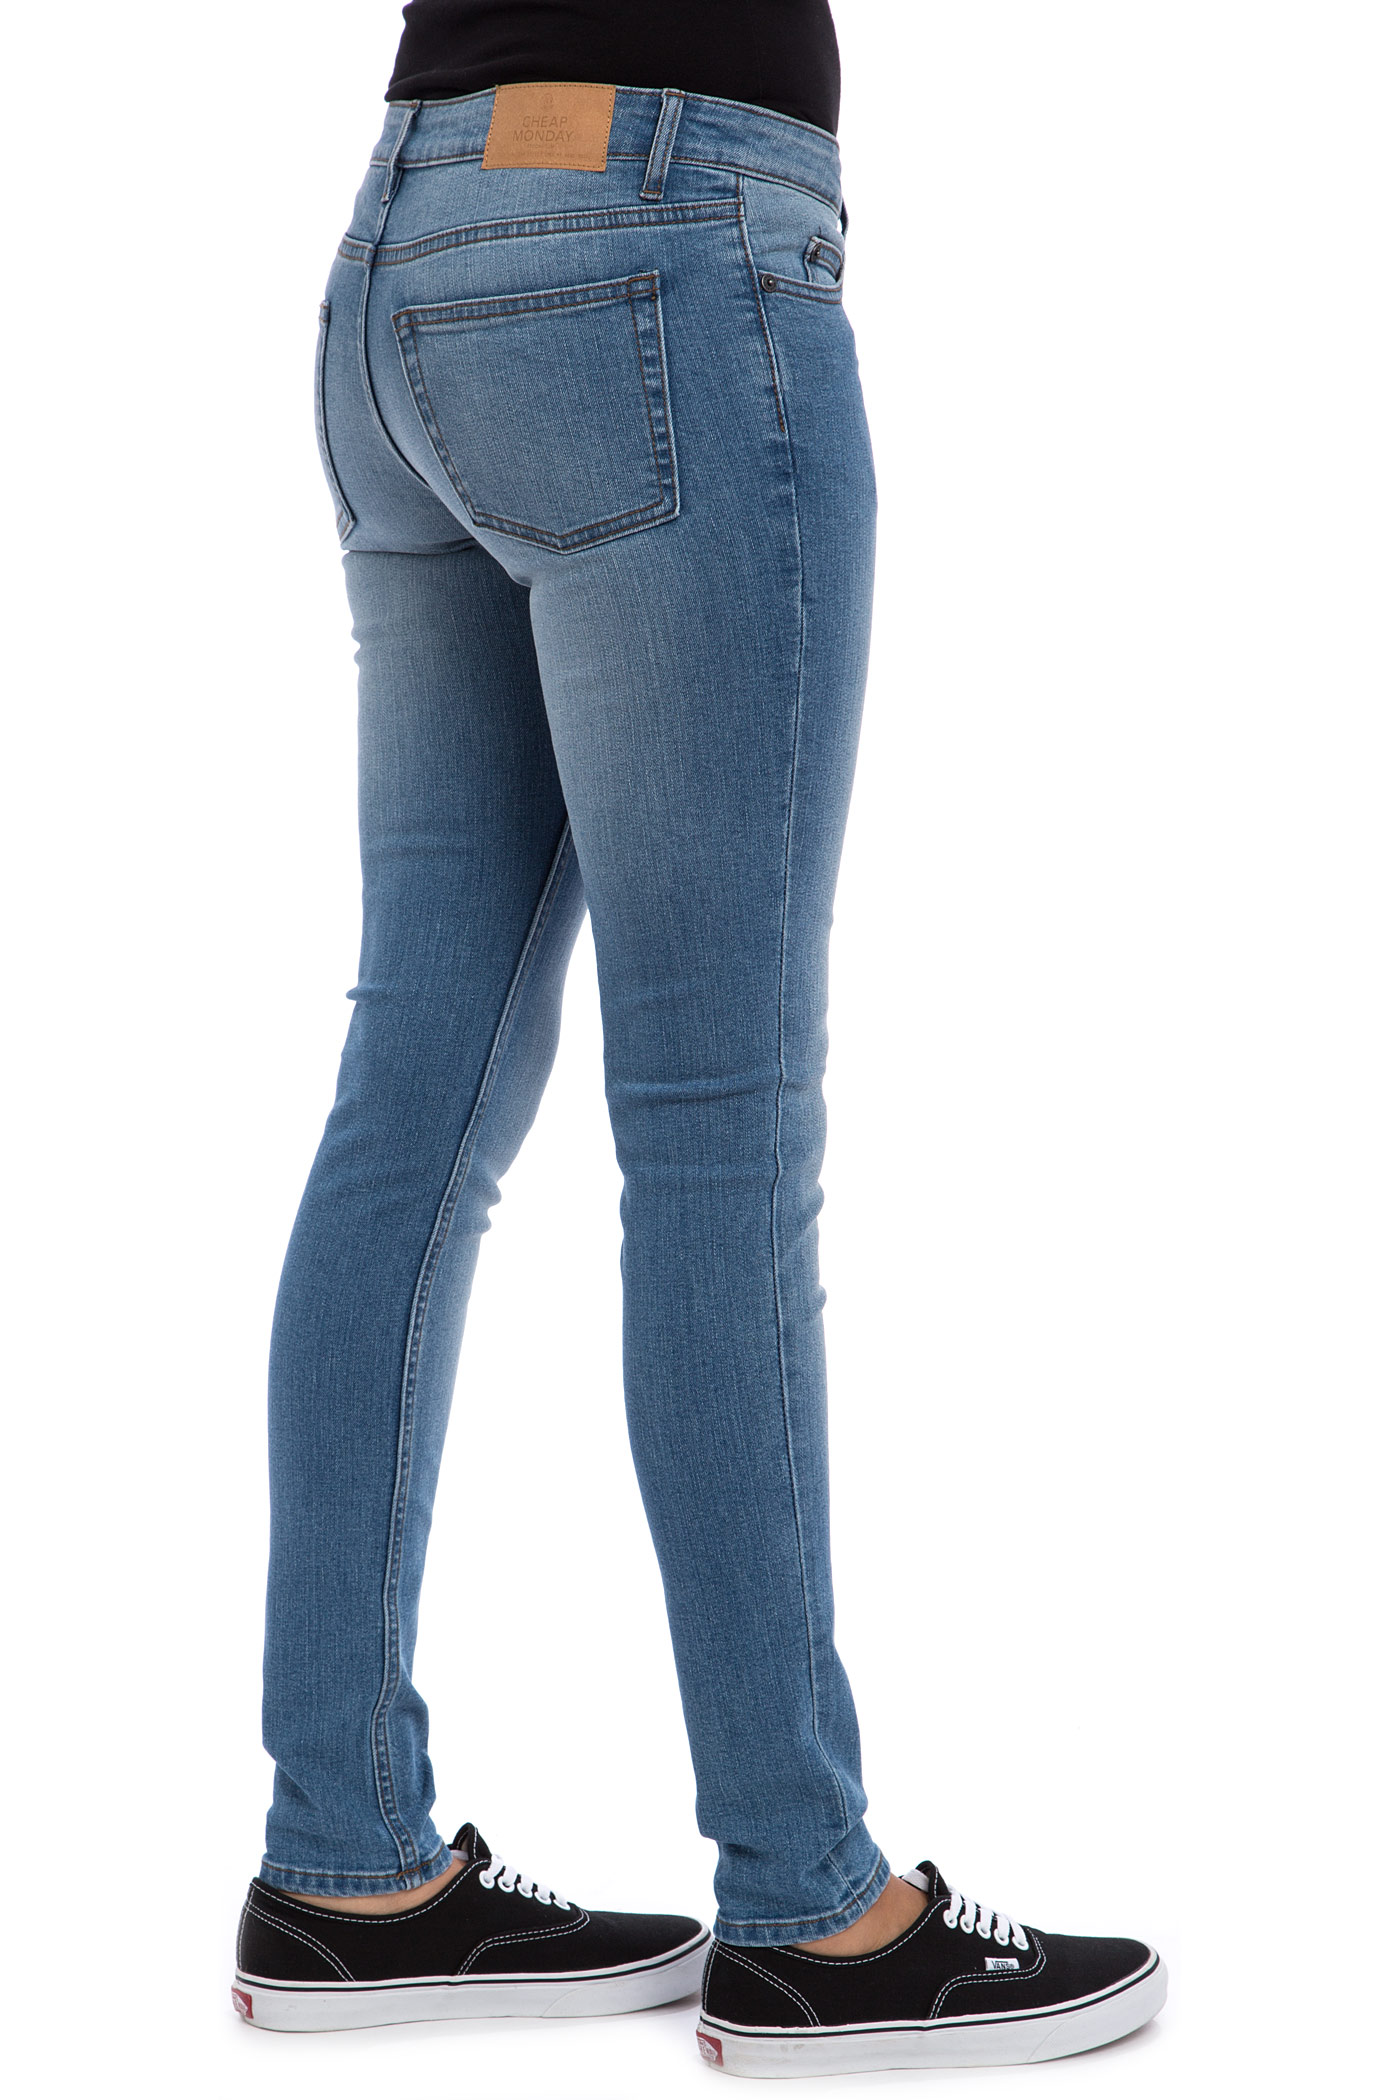 Cheap Jeans for Ladies